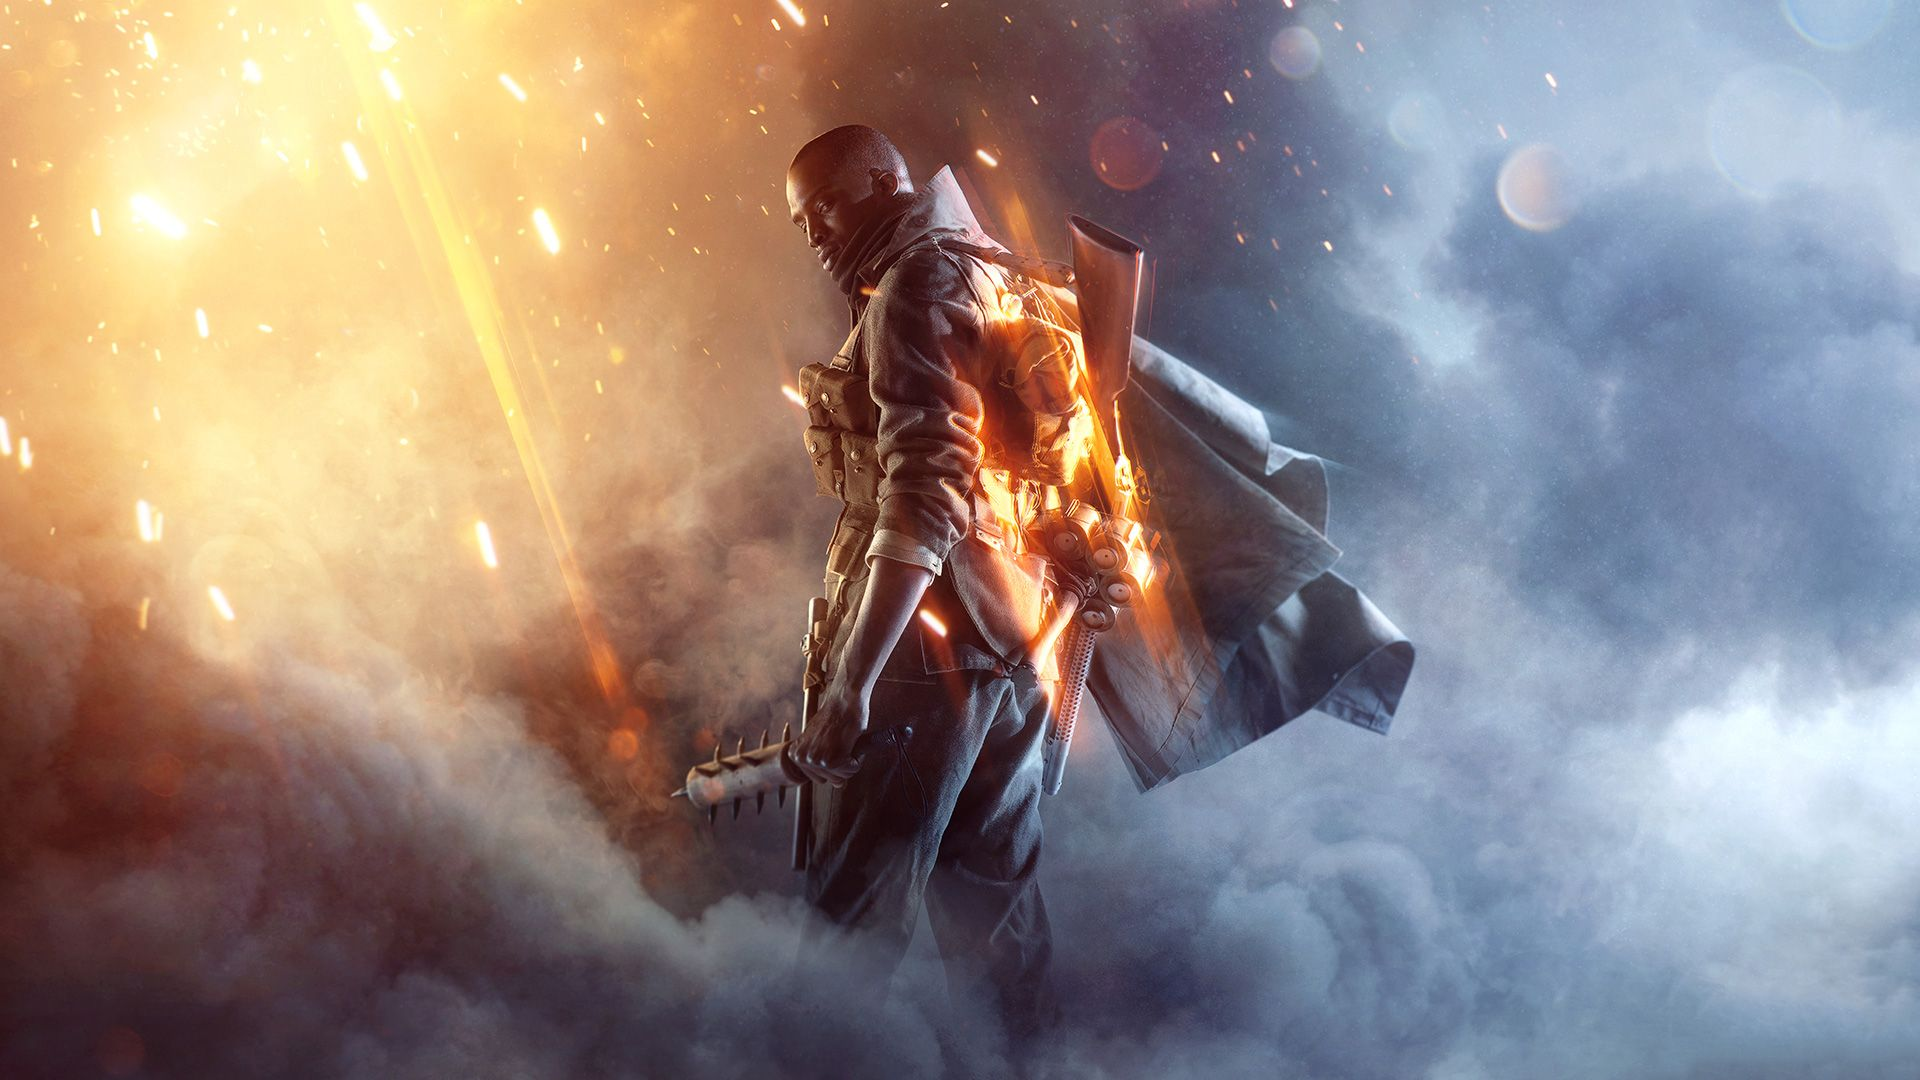 1920x1080 Top 20 Upcoming Games Wallpapers Pack W O Logos R Wallpapers Battlefield 1 Battlefield Keys Art